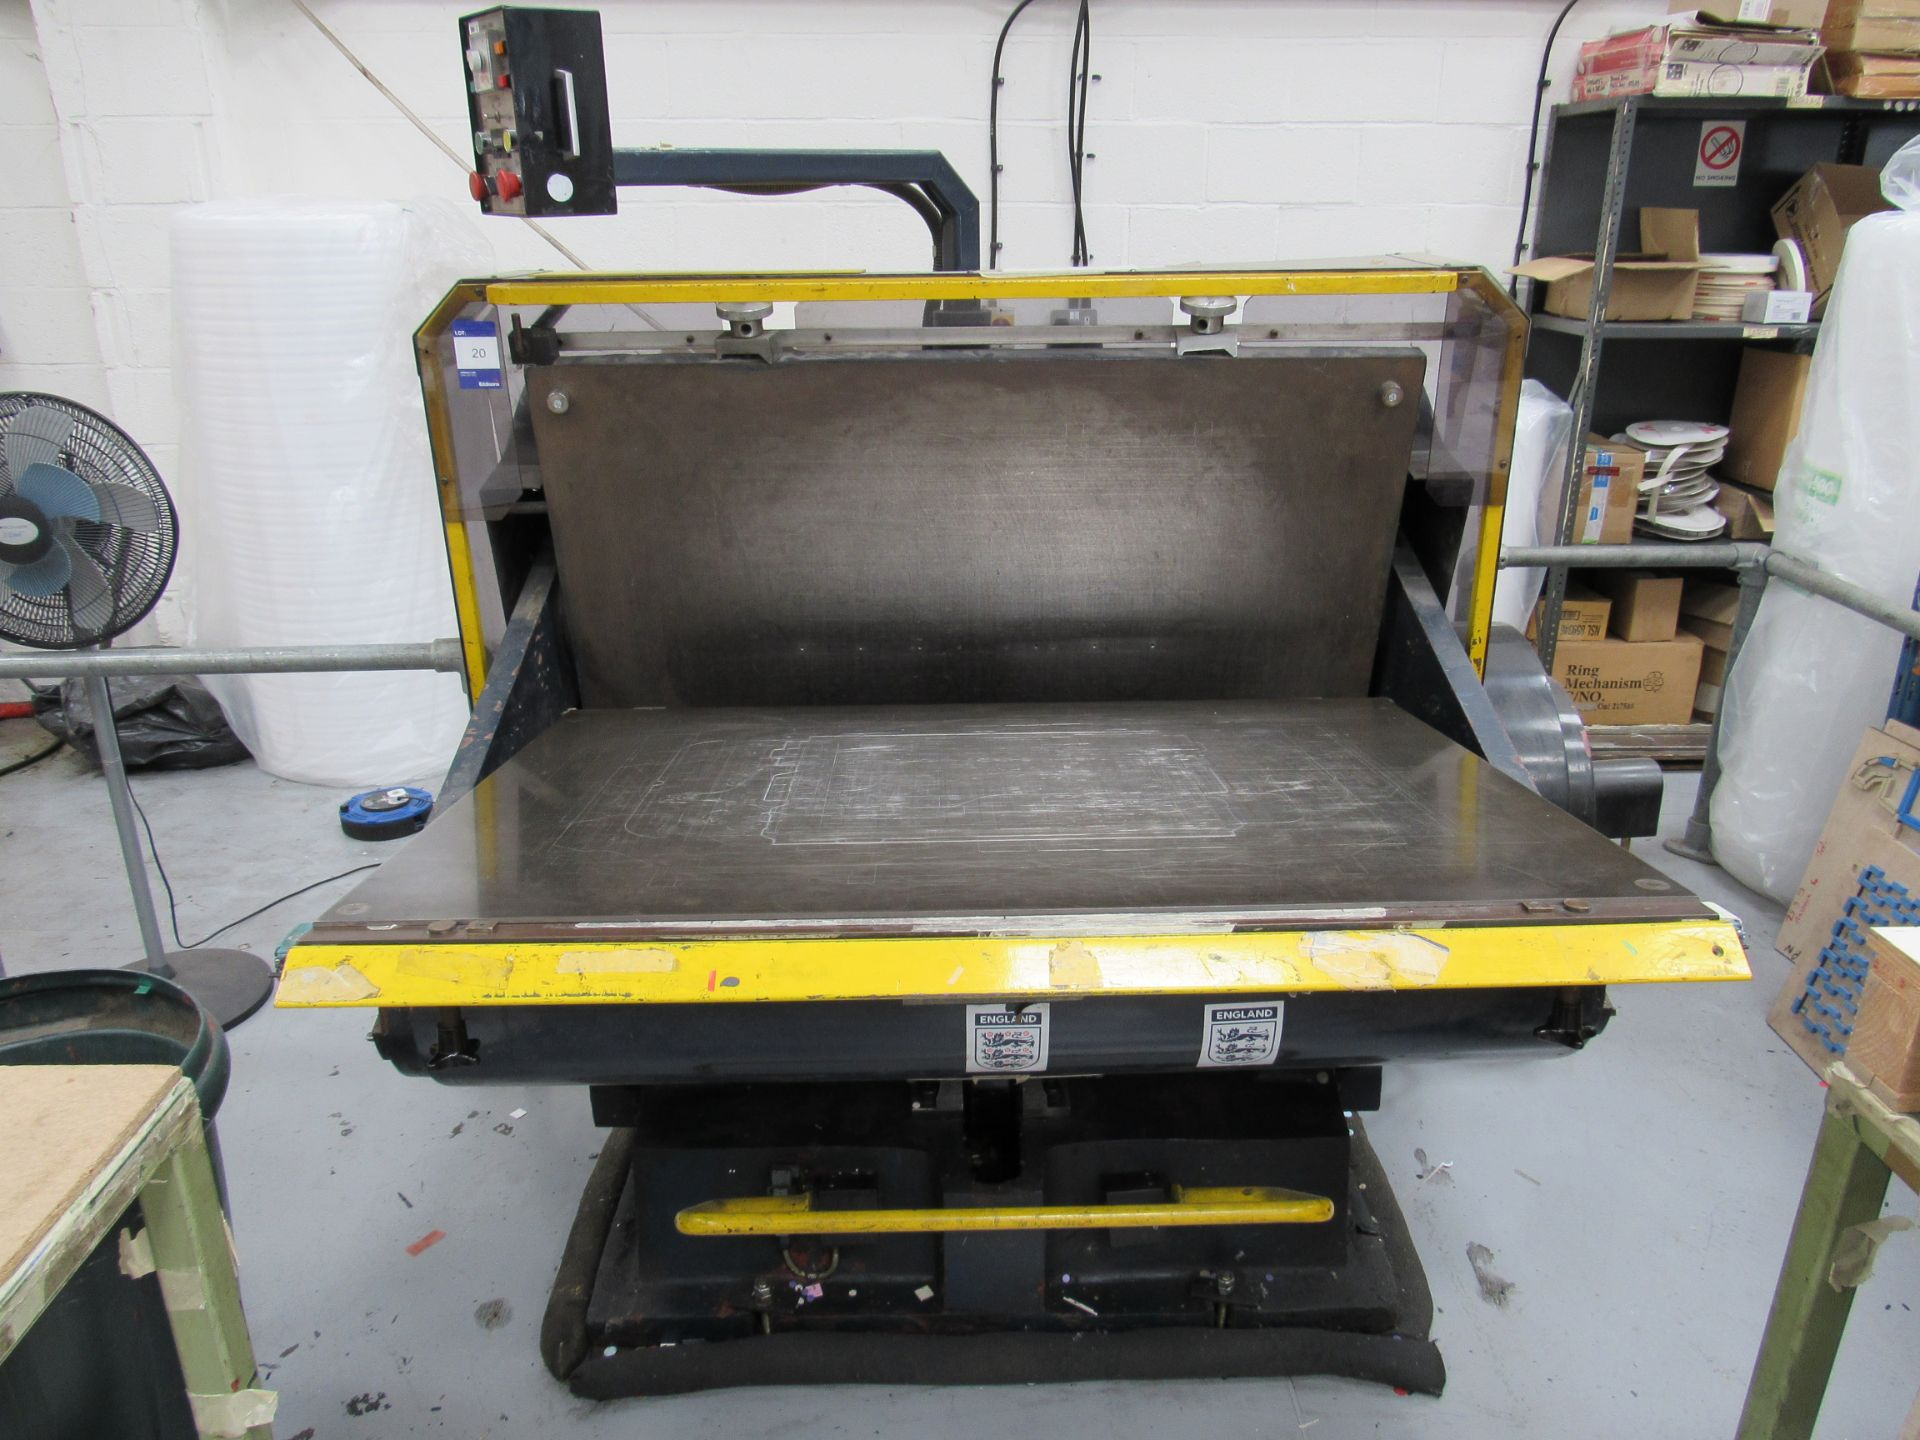 Viking Press VK1330 Cut and Crease Platen 1330 x 960mm Serial Number 97172 - Image 3 of 9